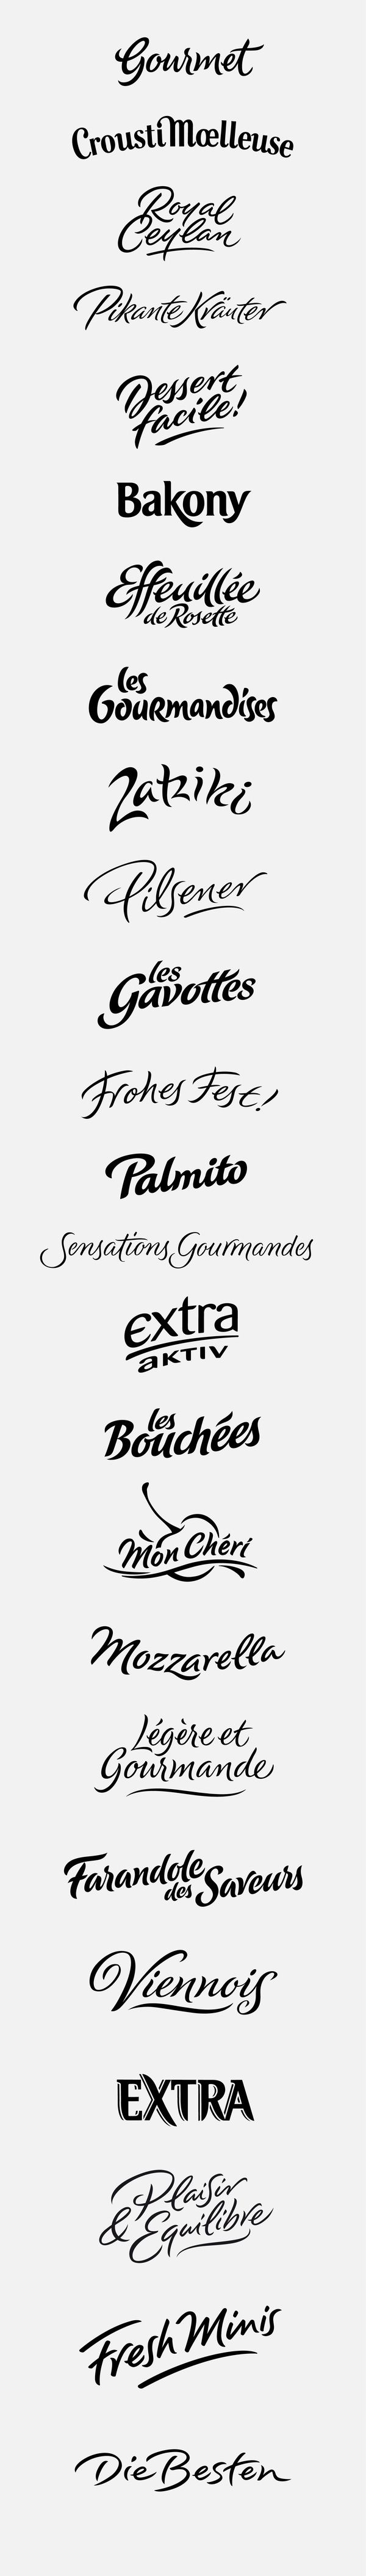 logotypes: foody, appetizing by Peter Becker, via Behance